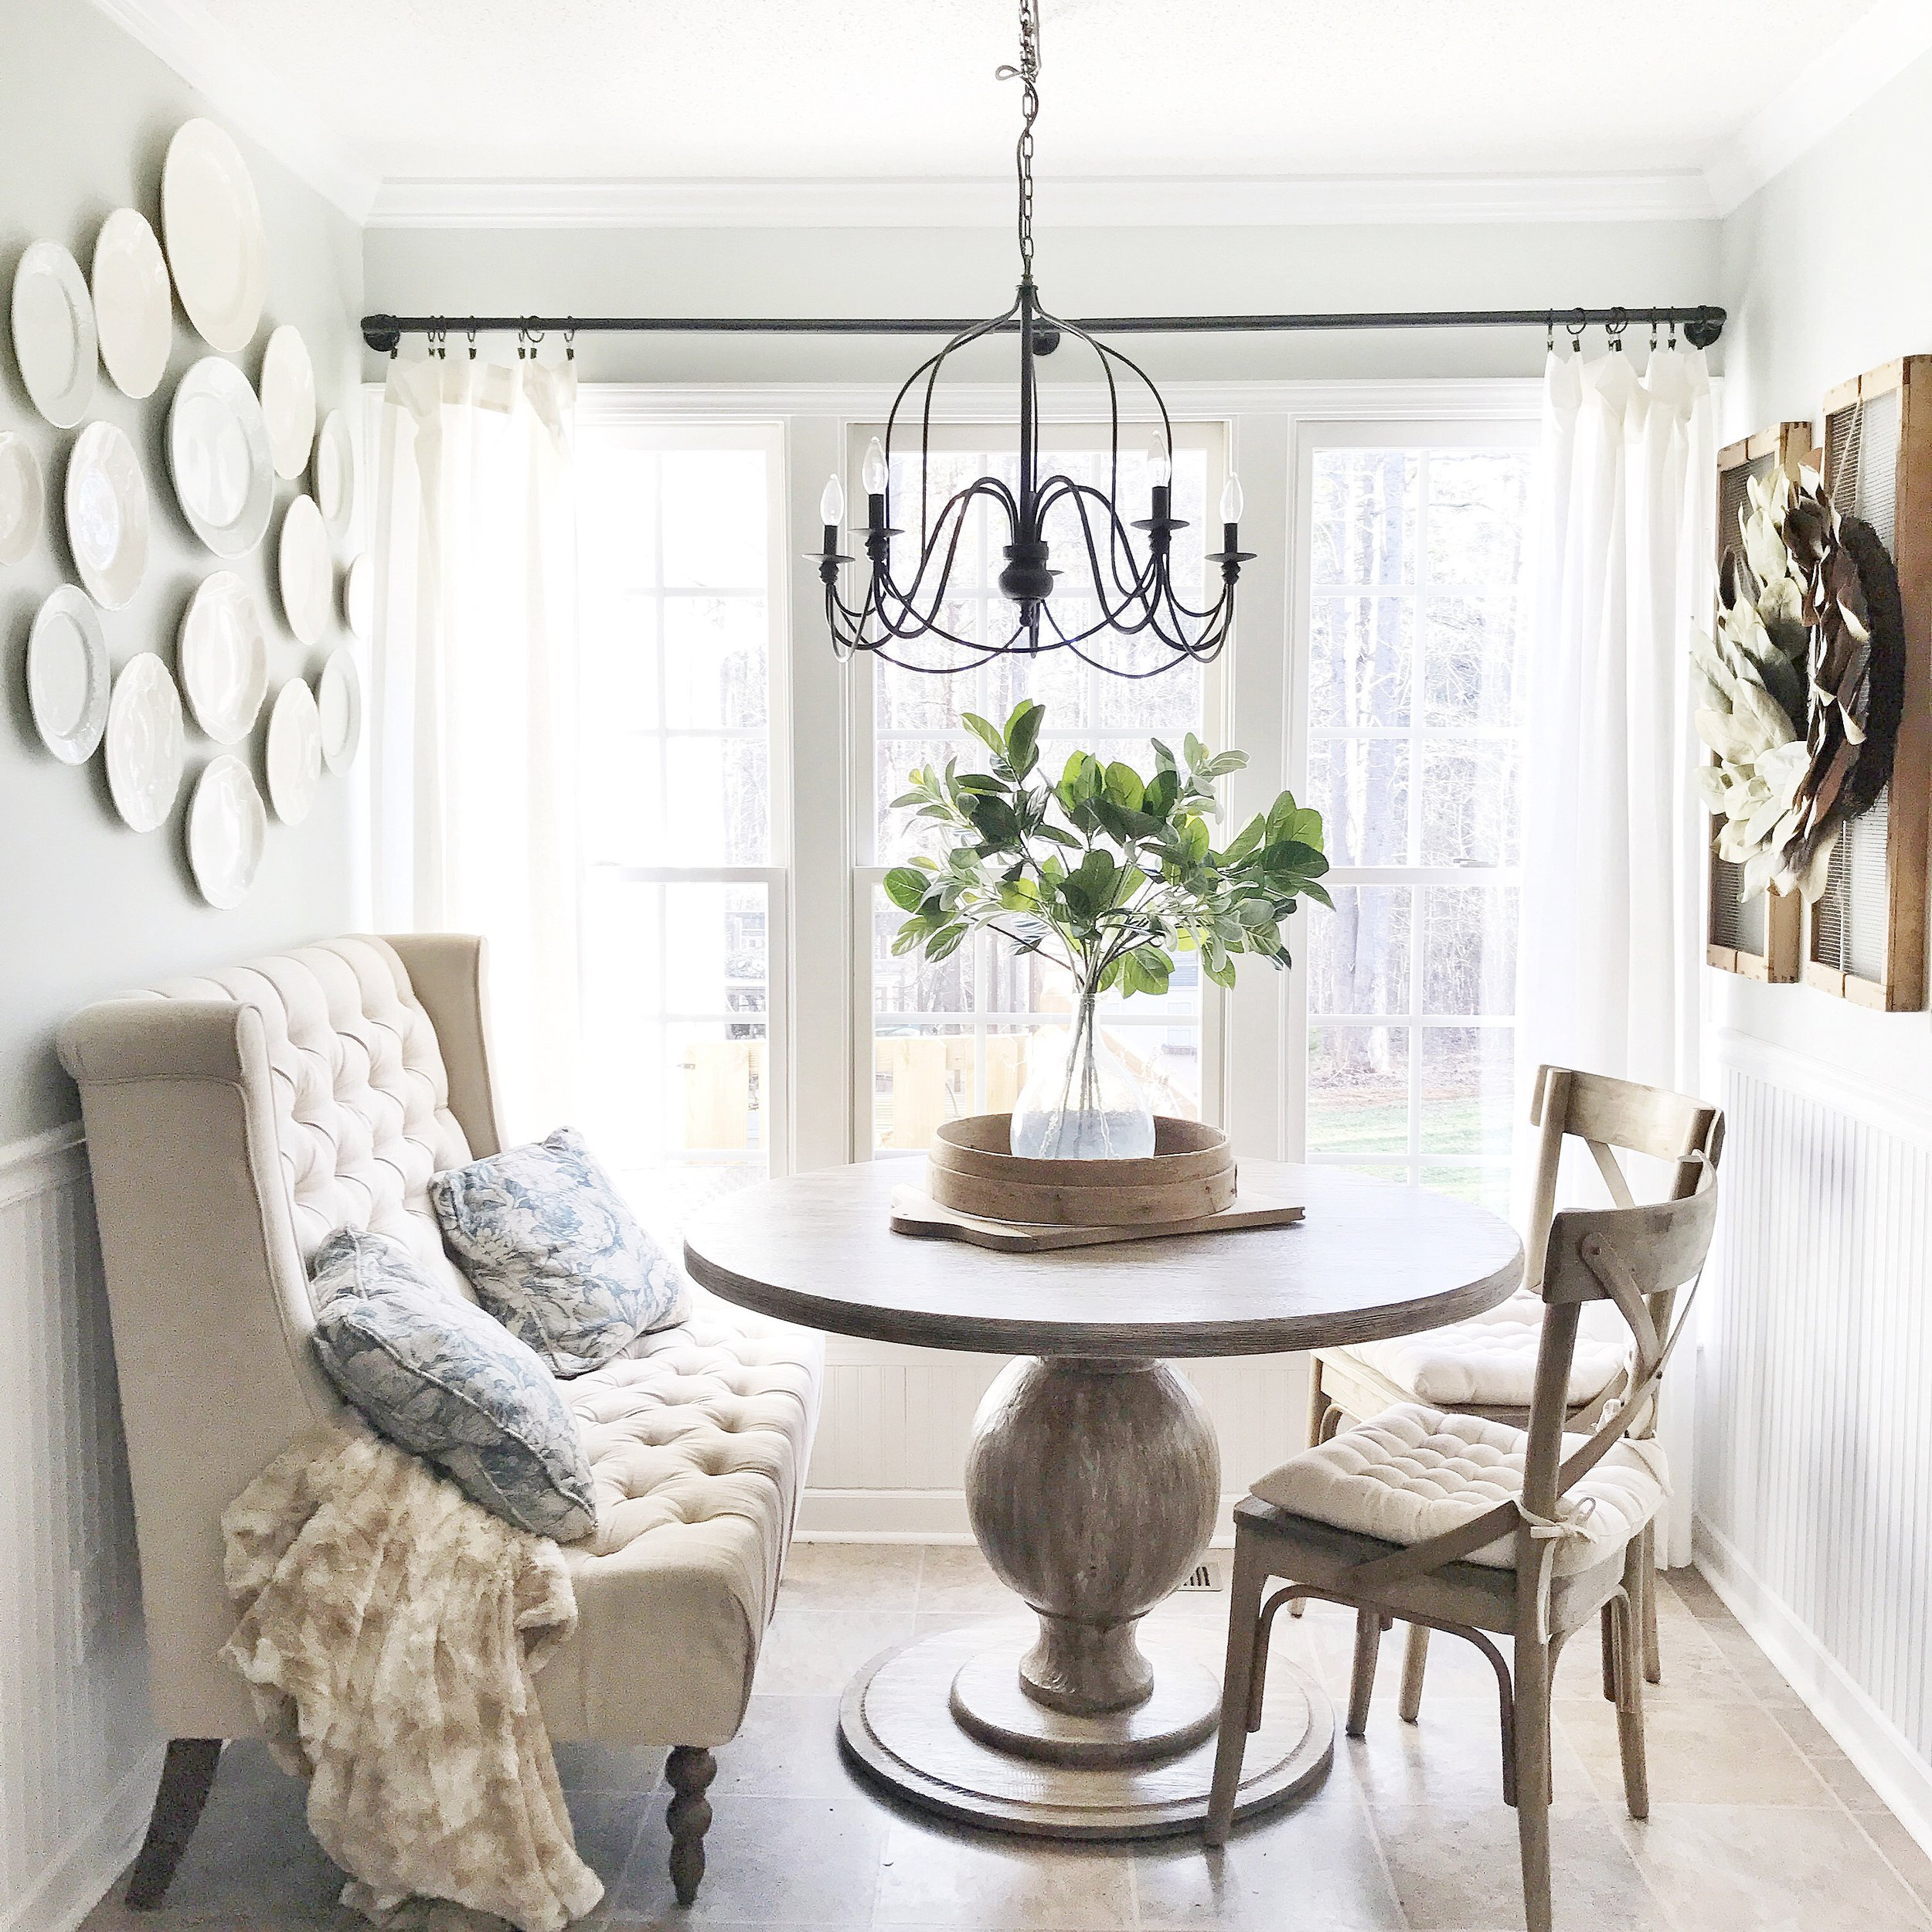 Farmhouse Style Breakfast Nook with a White Plate Wall and French Linen Curtains by Plum Pretty Decor and Design